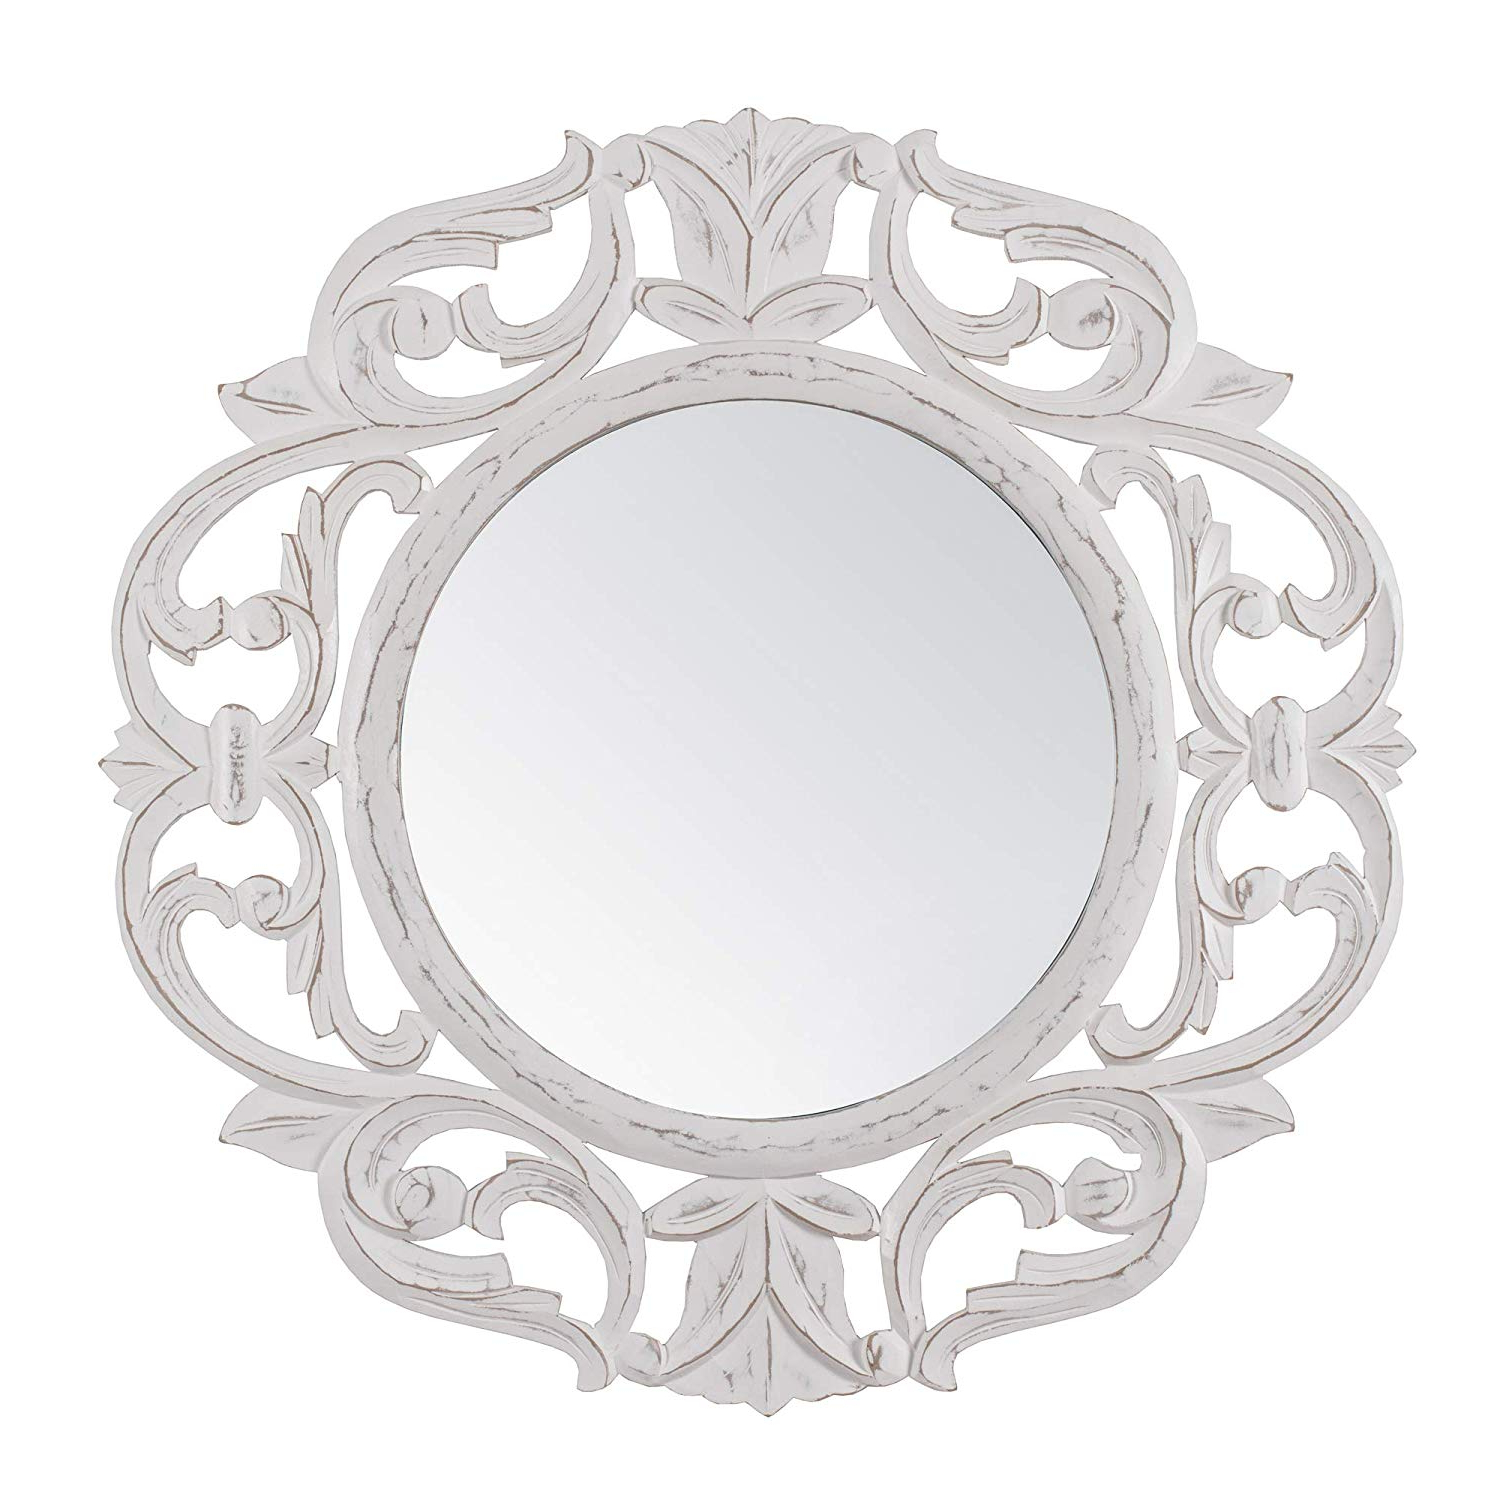 Widely Used Decorative Wall Mirrors Within Madeleine Home Alba Decorative Wall Mirror (View 20 of 20)